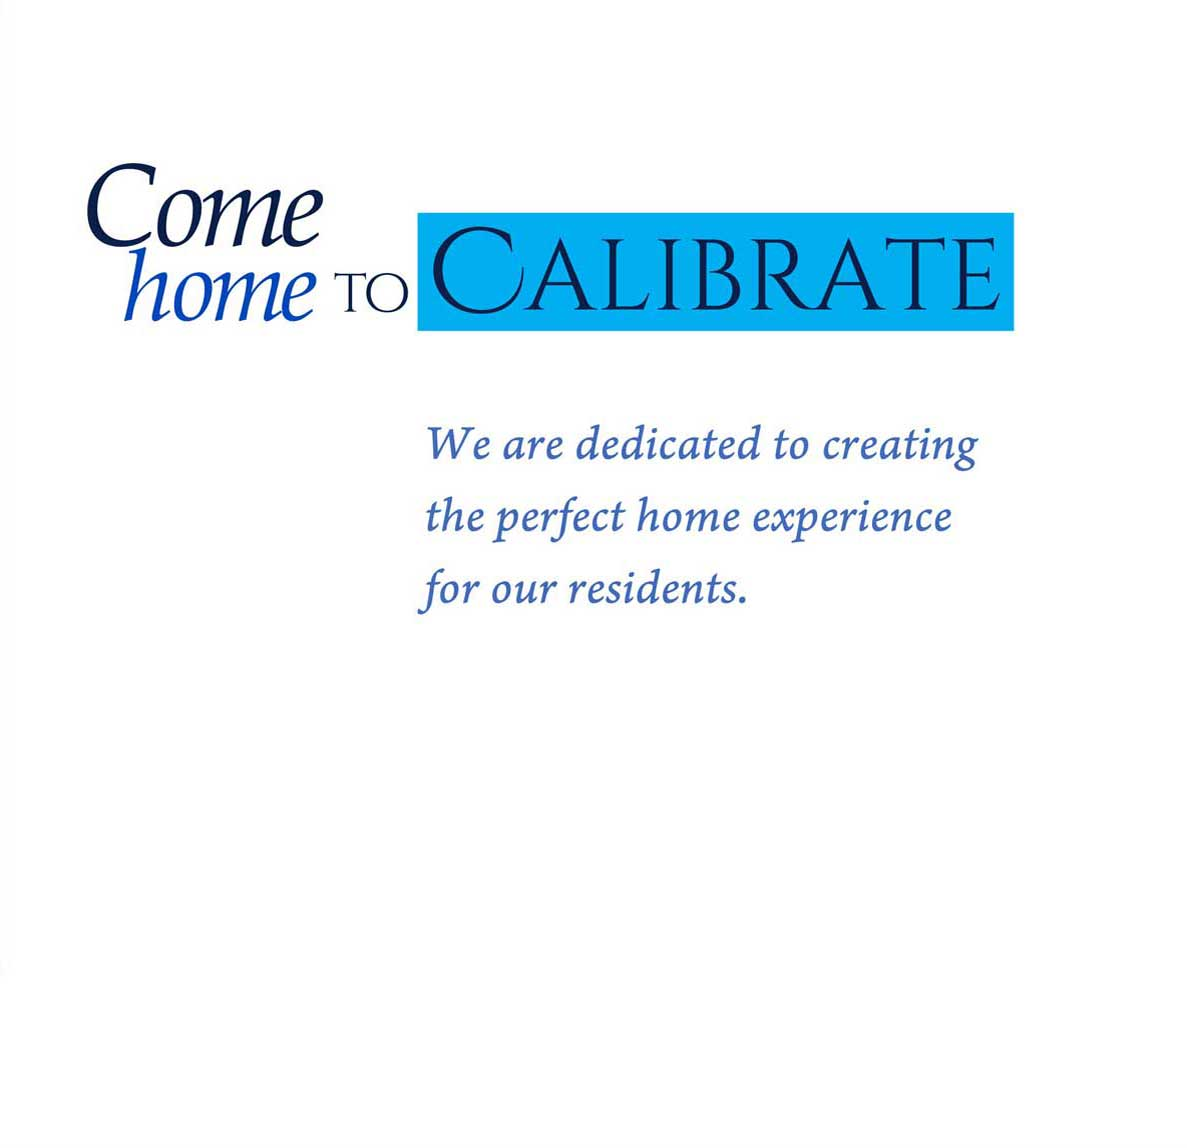 come home to calibrate we are dedicated to creating the perfect home experience for you property management